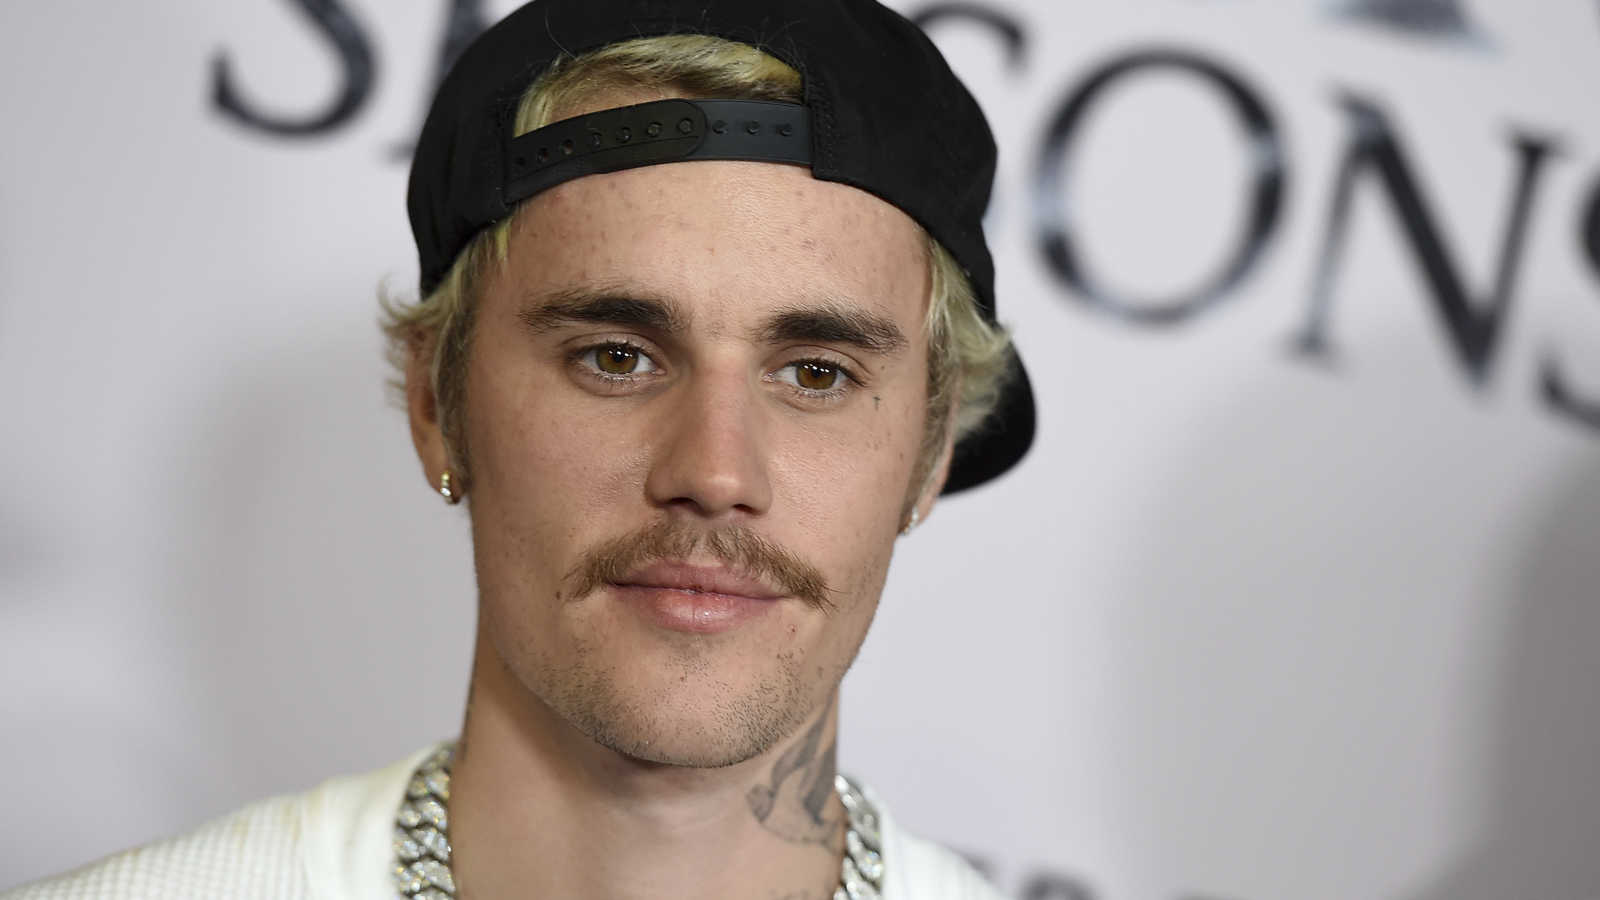 Justin Bieber fires back at sexual assault allegations with multi-million dollar lawsuits